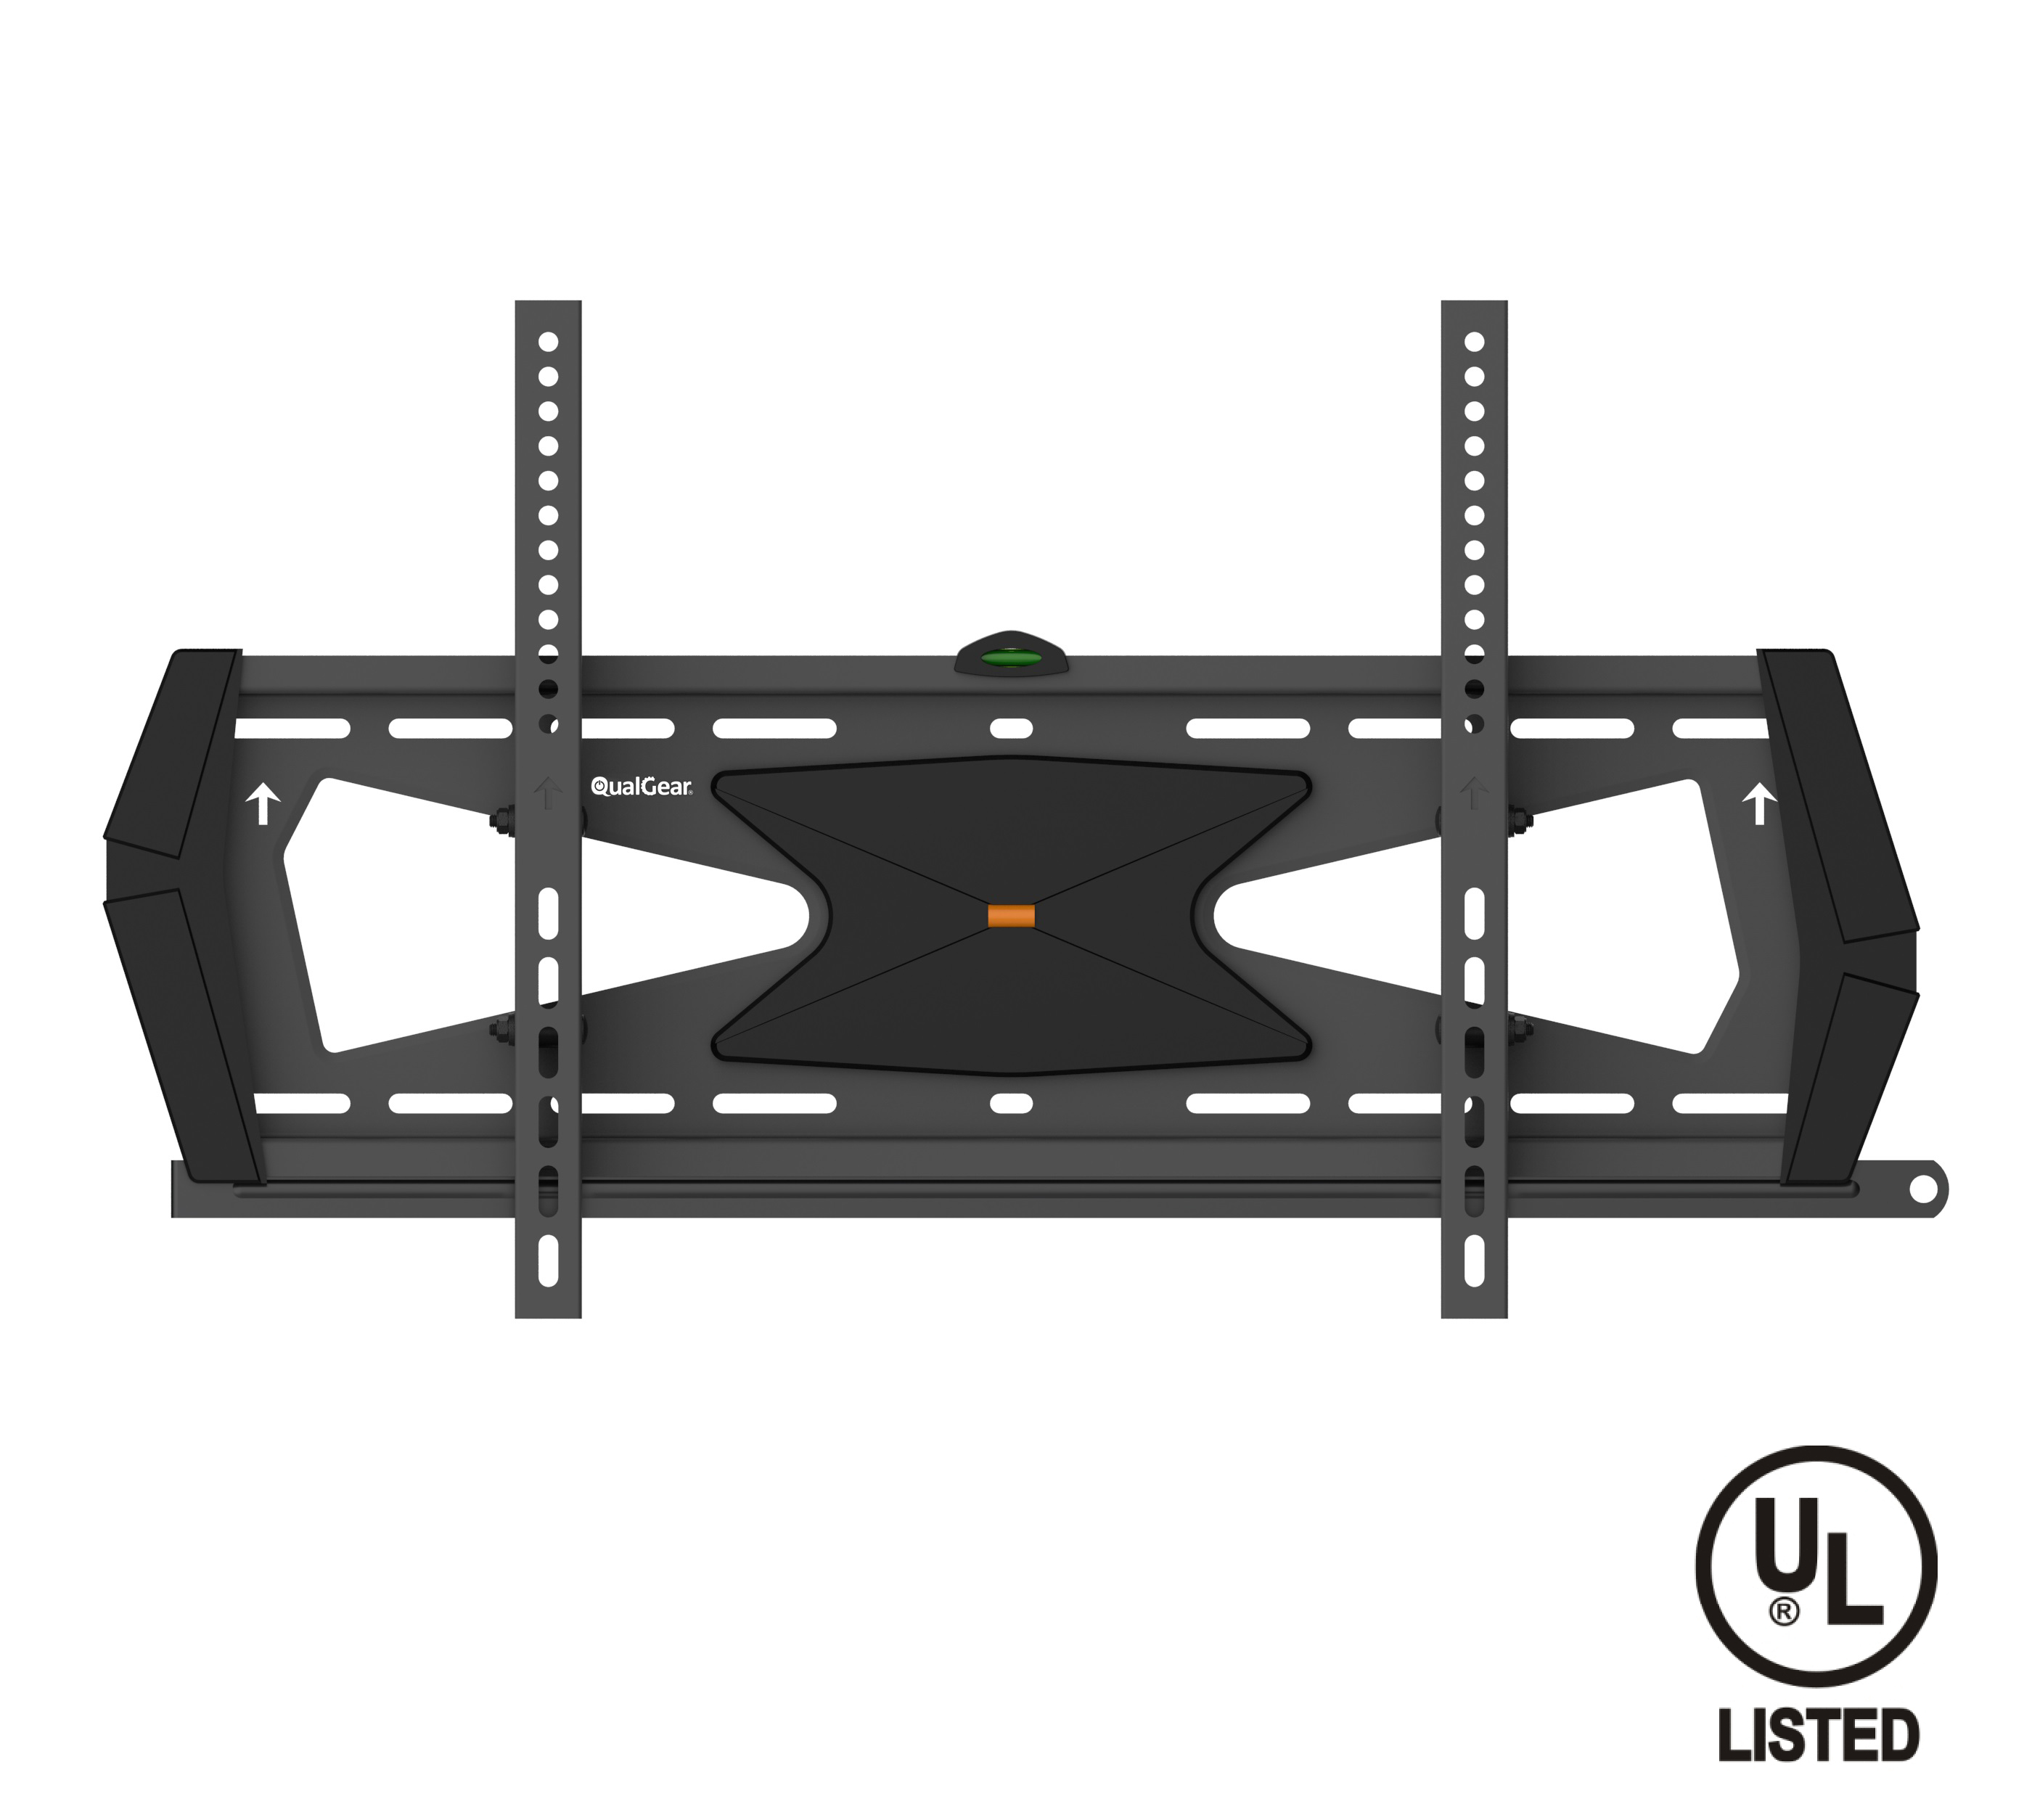 QualGear® Heavy Duty Tilting TV Wall Mount for 37-70 Inch Flat Panel and Curved TVs, Black (QG-TM-031-BLK) [UL Listed]